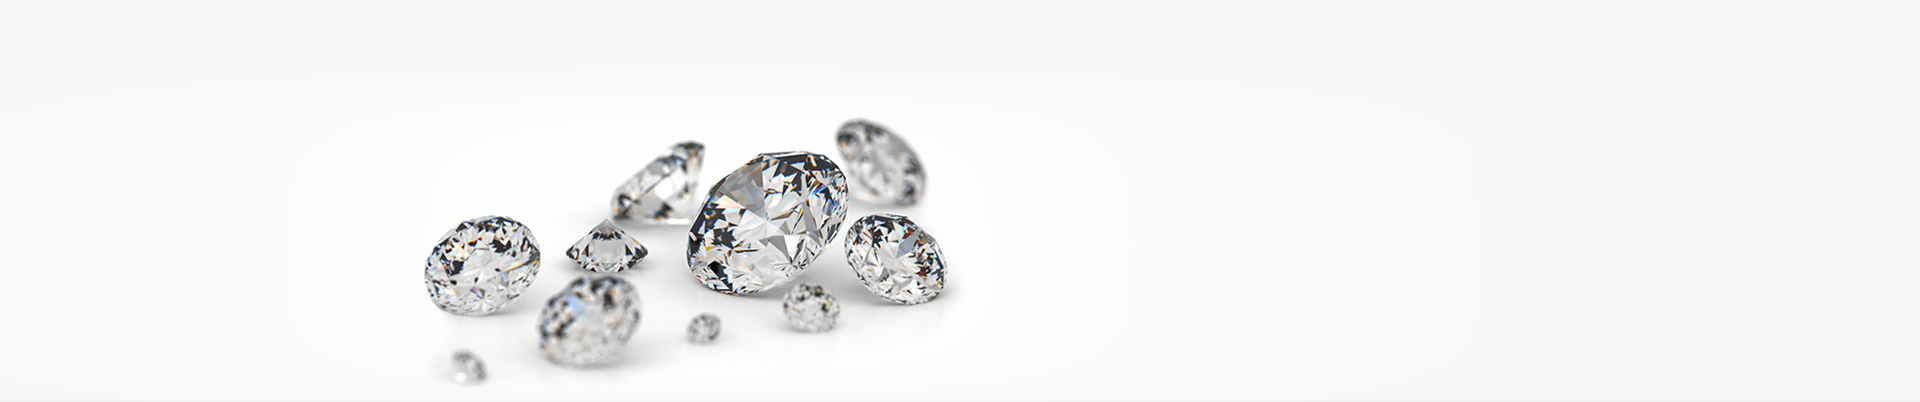 Immediate Quote For Diamond Jewellery | Sell My Diamond For Cash